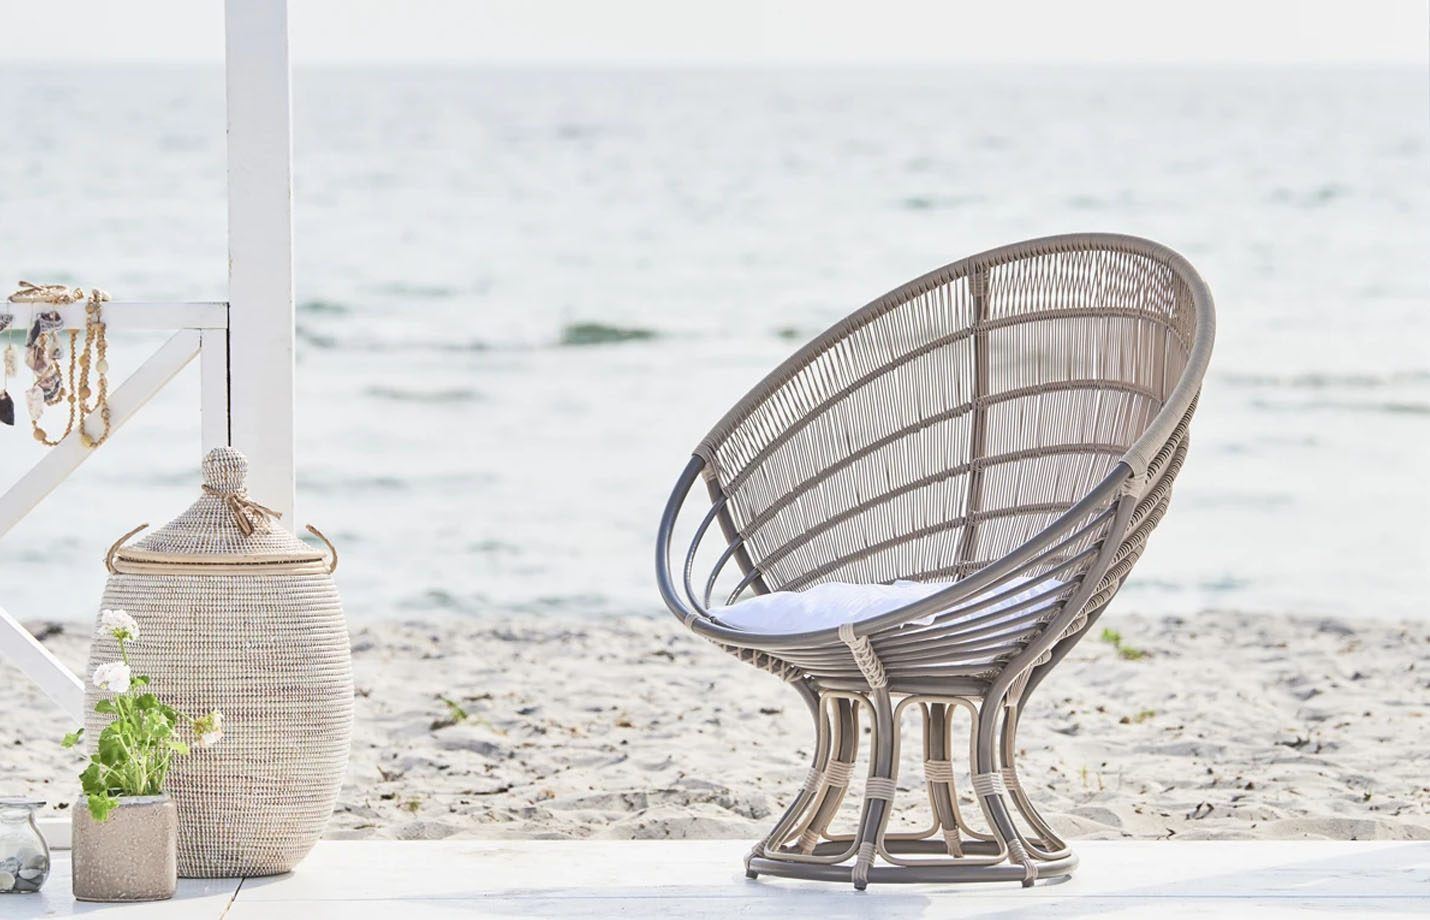 Luna-Exterior-Lounge-chair-Moccachino-LS1